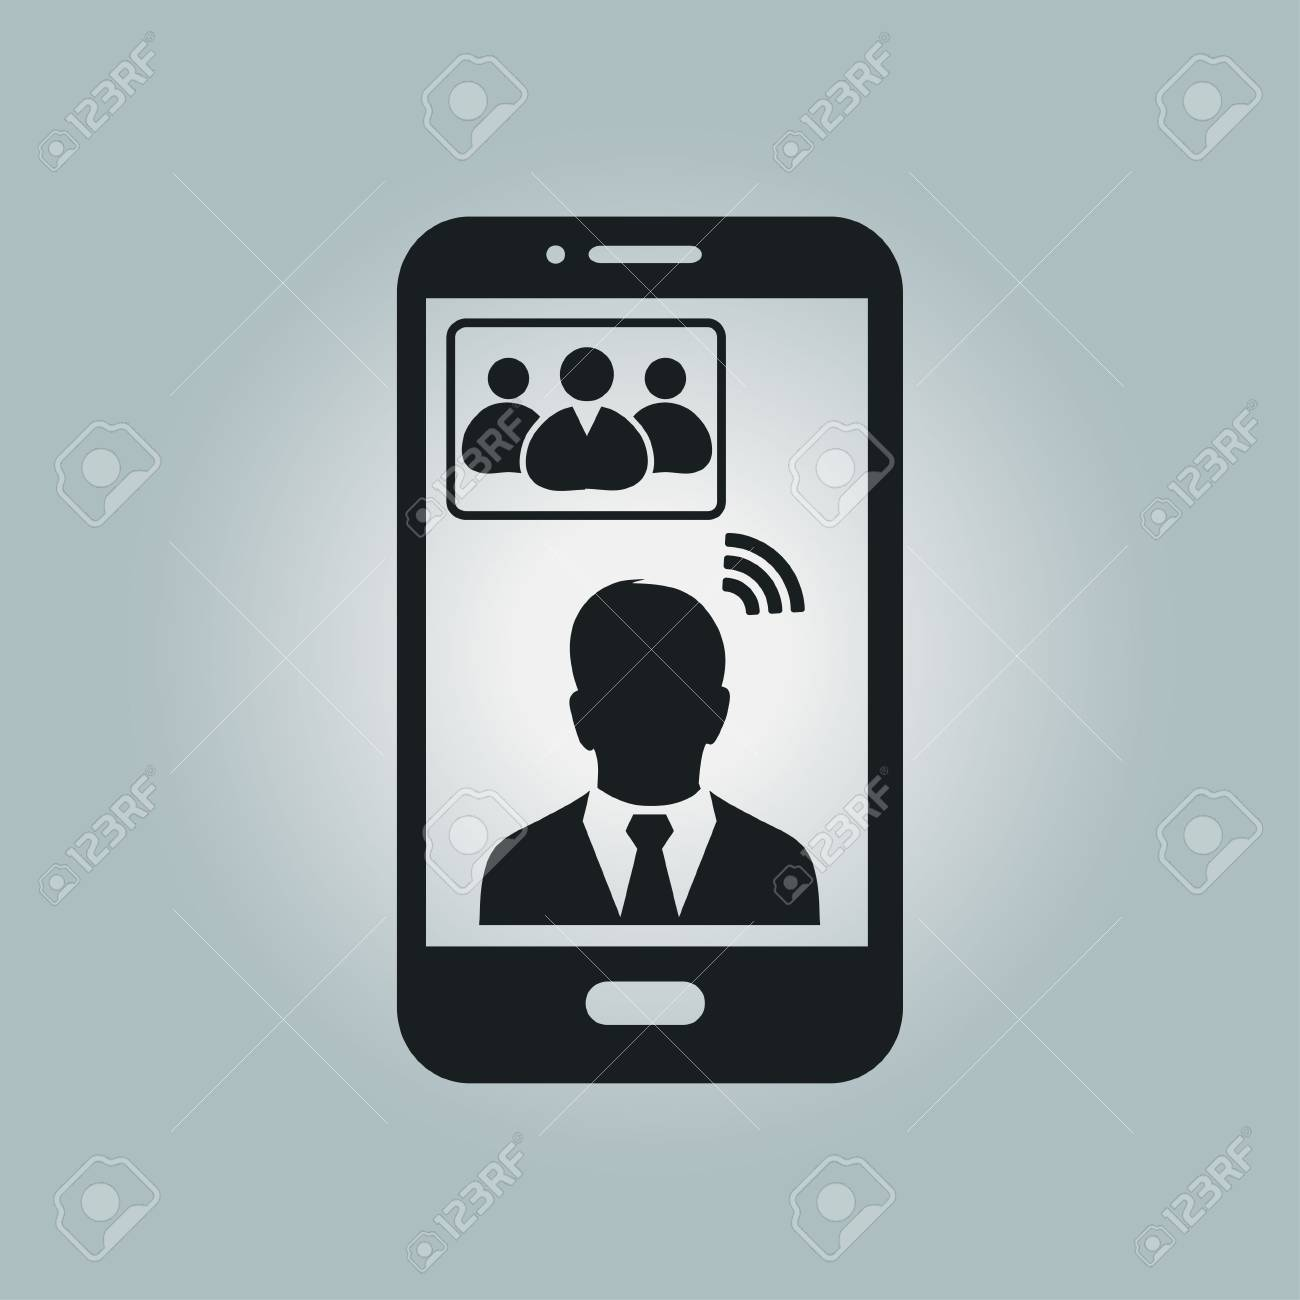 Online conference smart phone icon  Voice and video conferencing